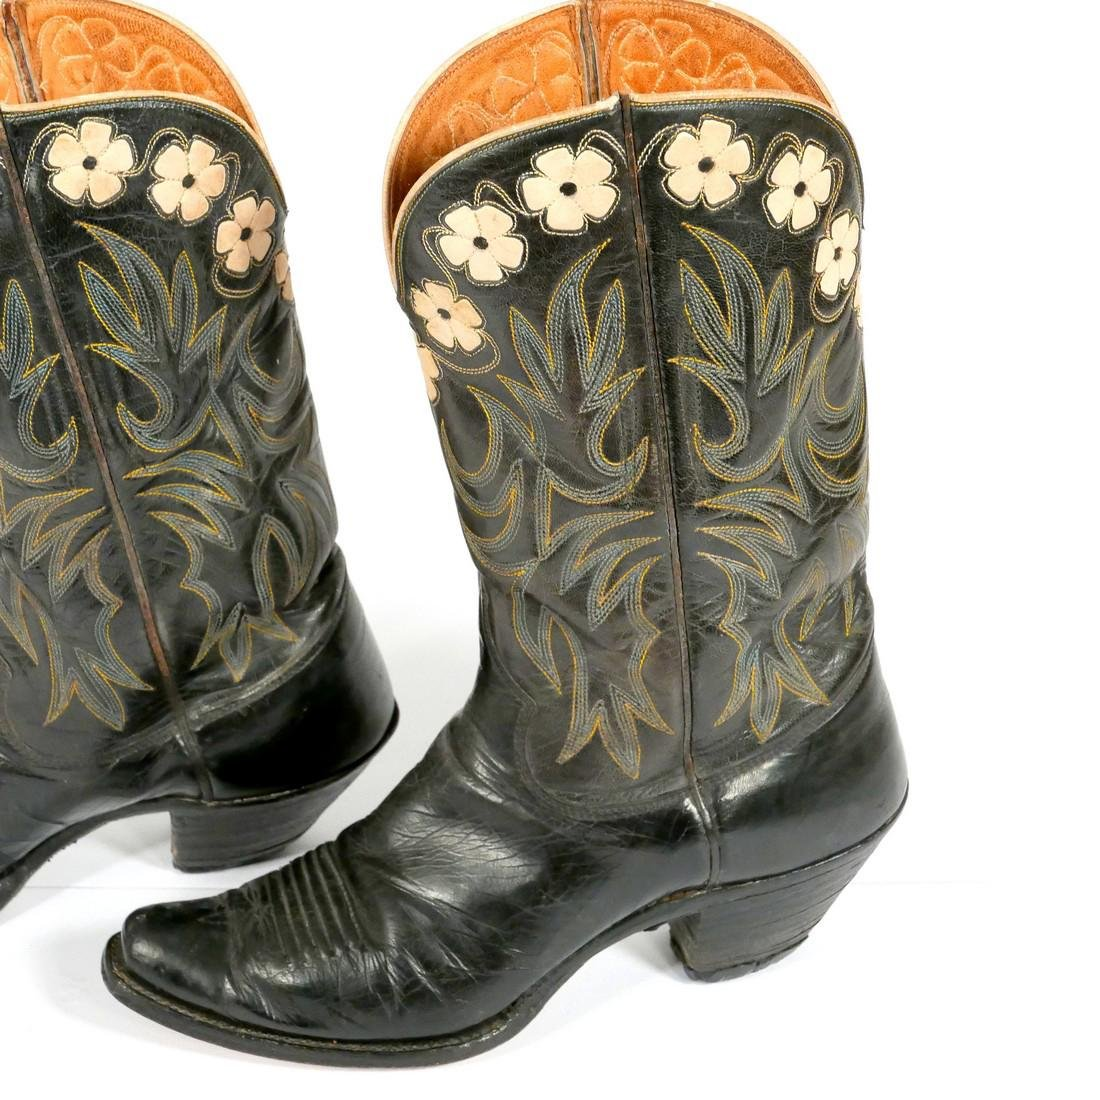 C.H. Hyer Benchmade Cowboy Boots - 2